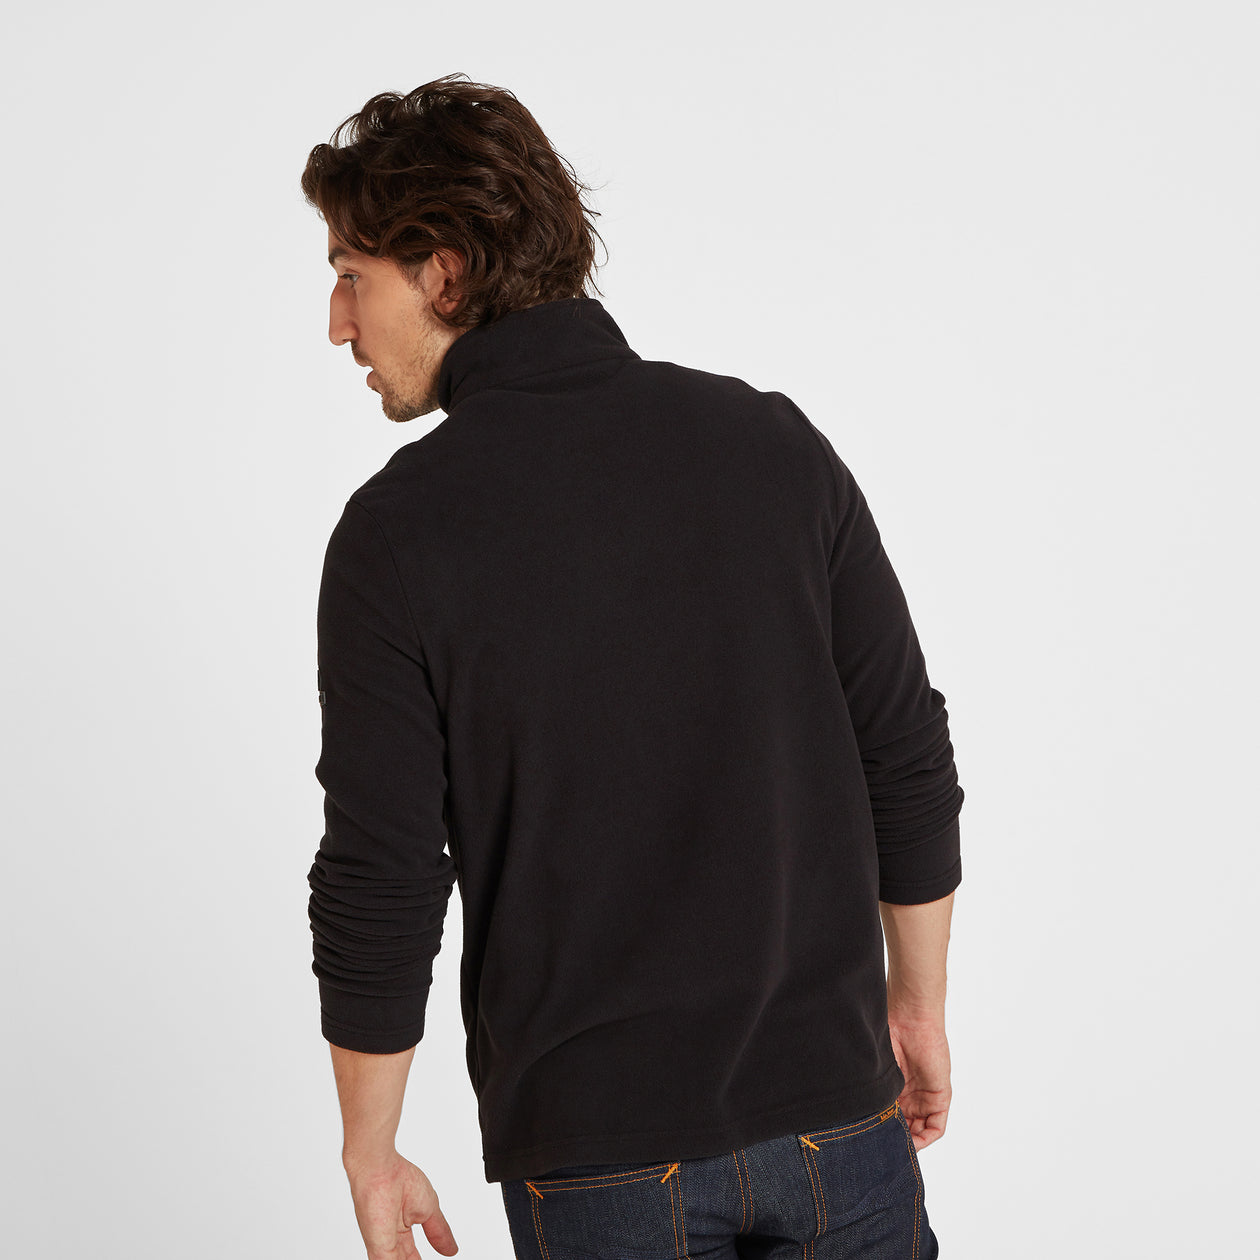 Appleby Mens Fleece Jacket - Black image 4